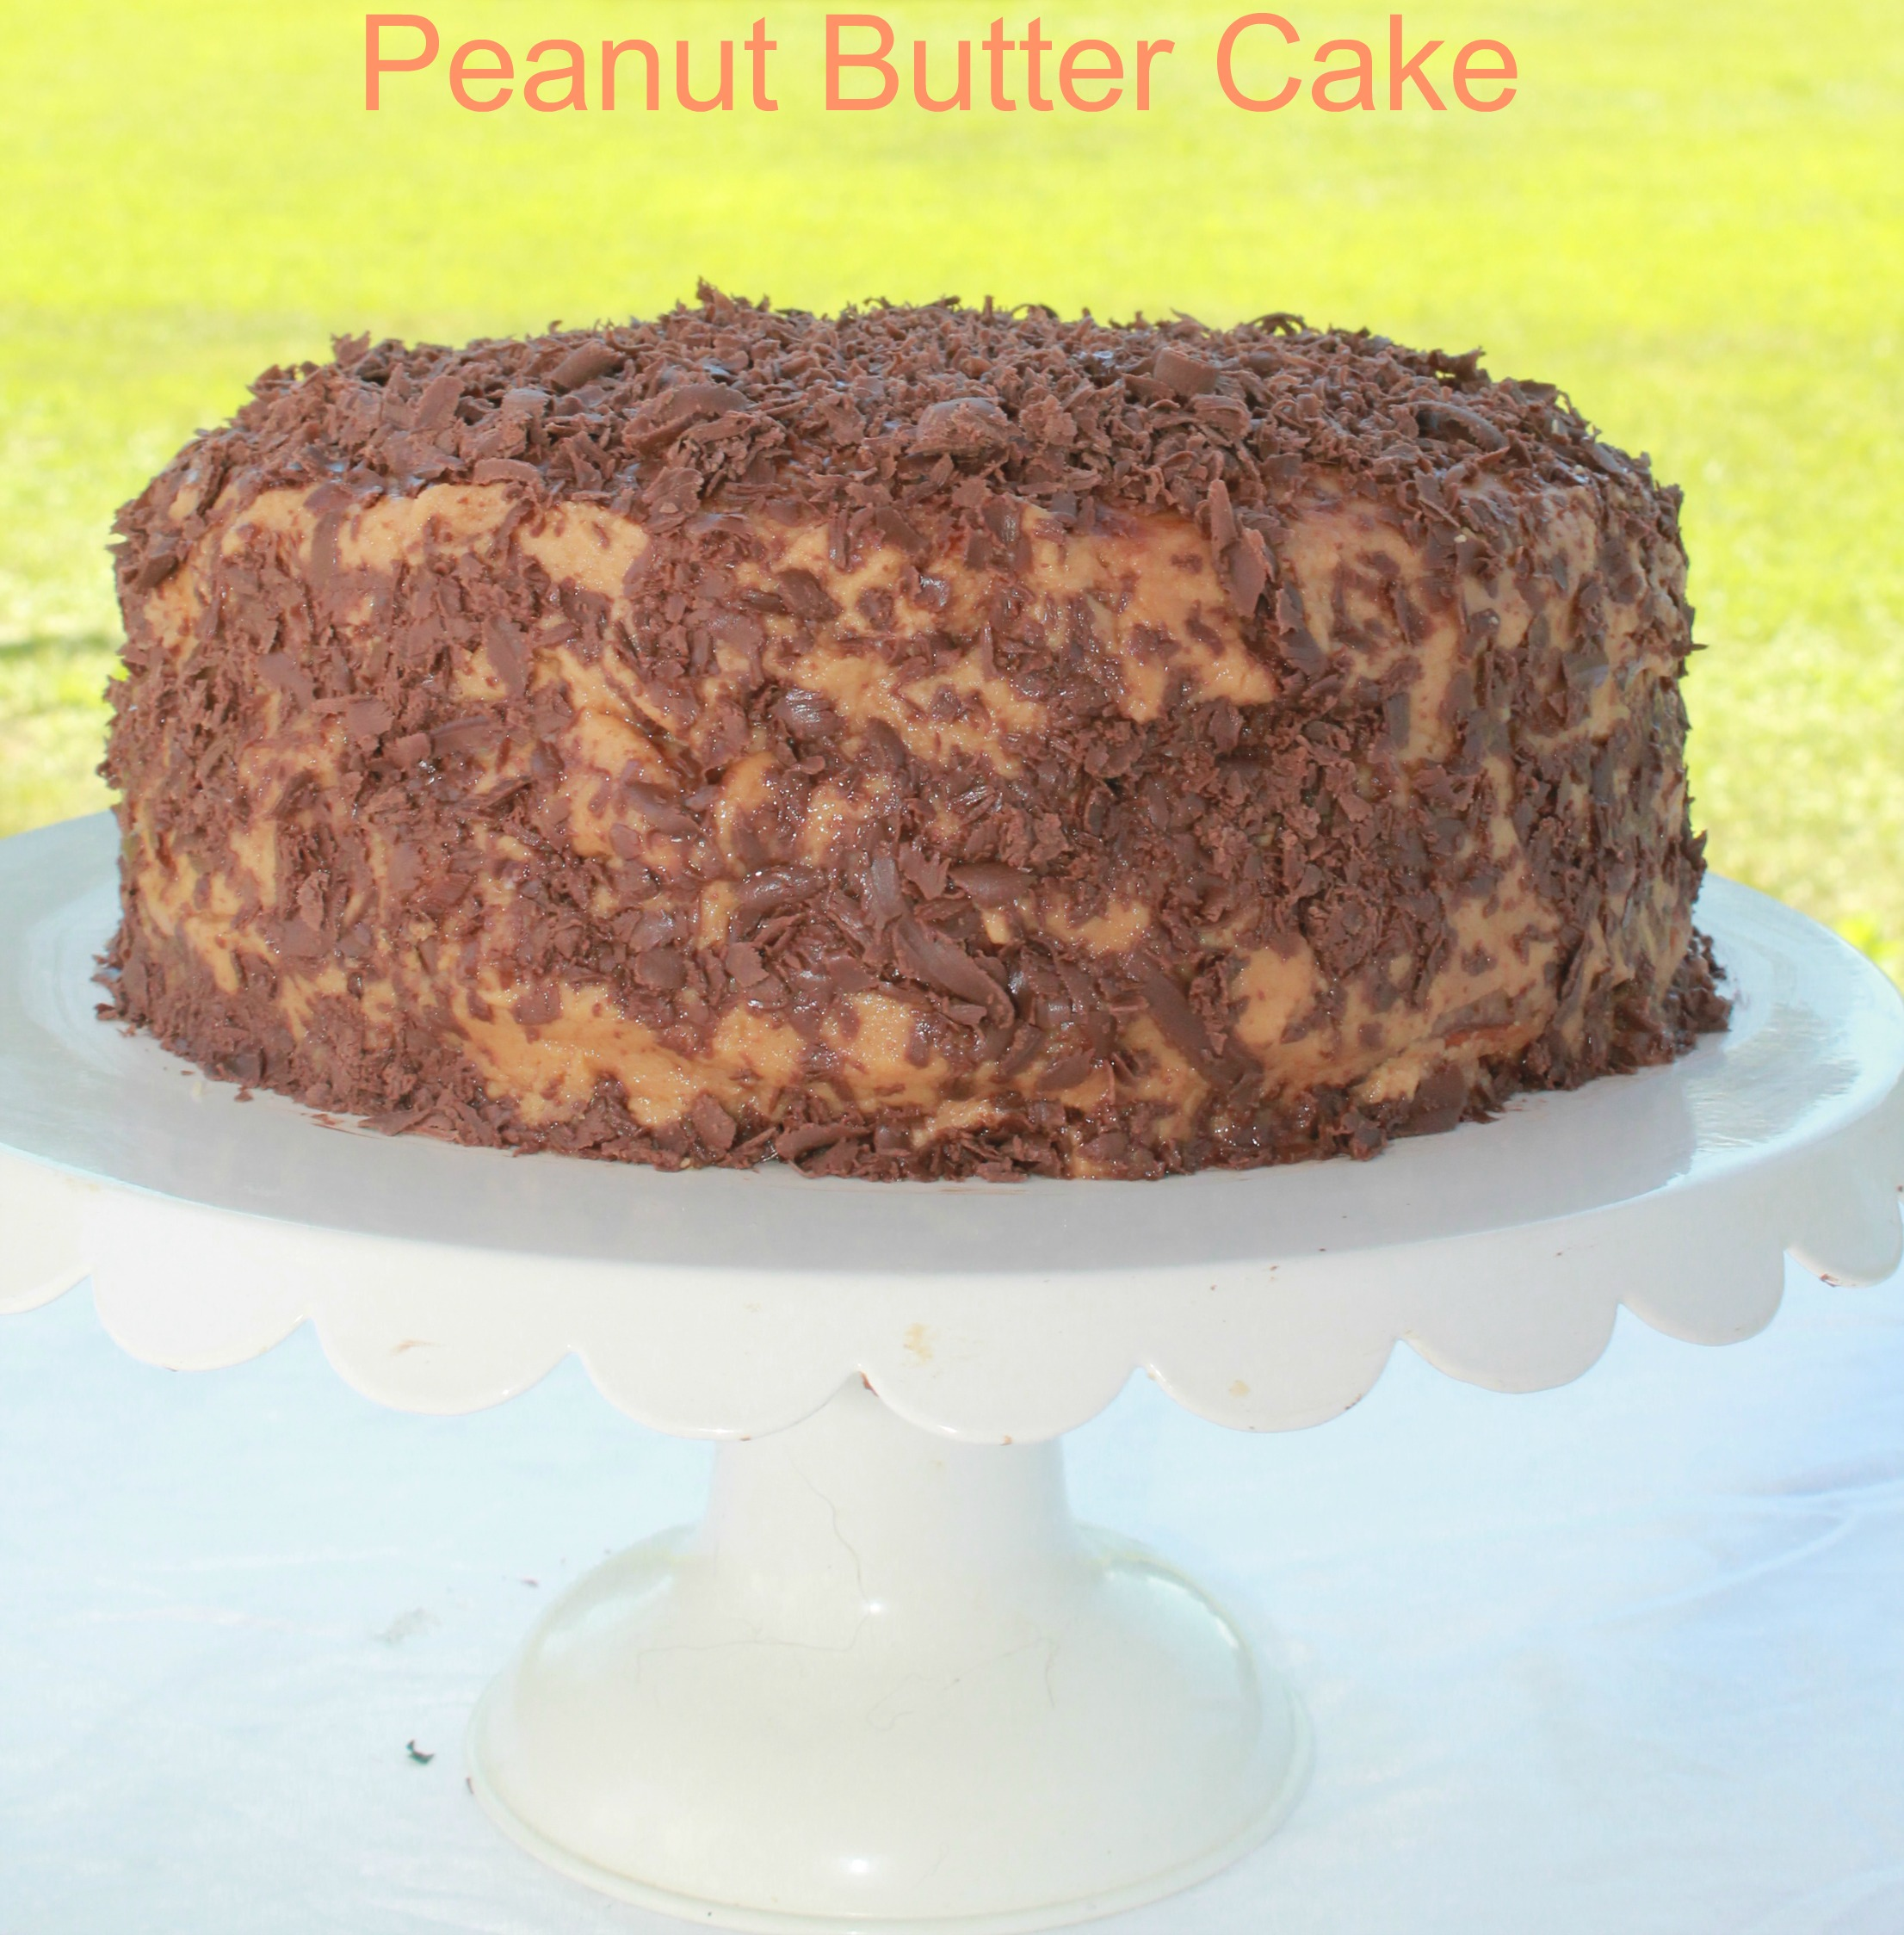 Peanut butter cup cake recipe simply southern mom for Desserts you can make with peanut butter